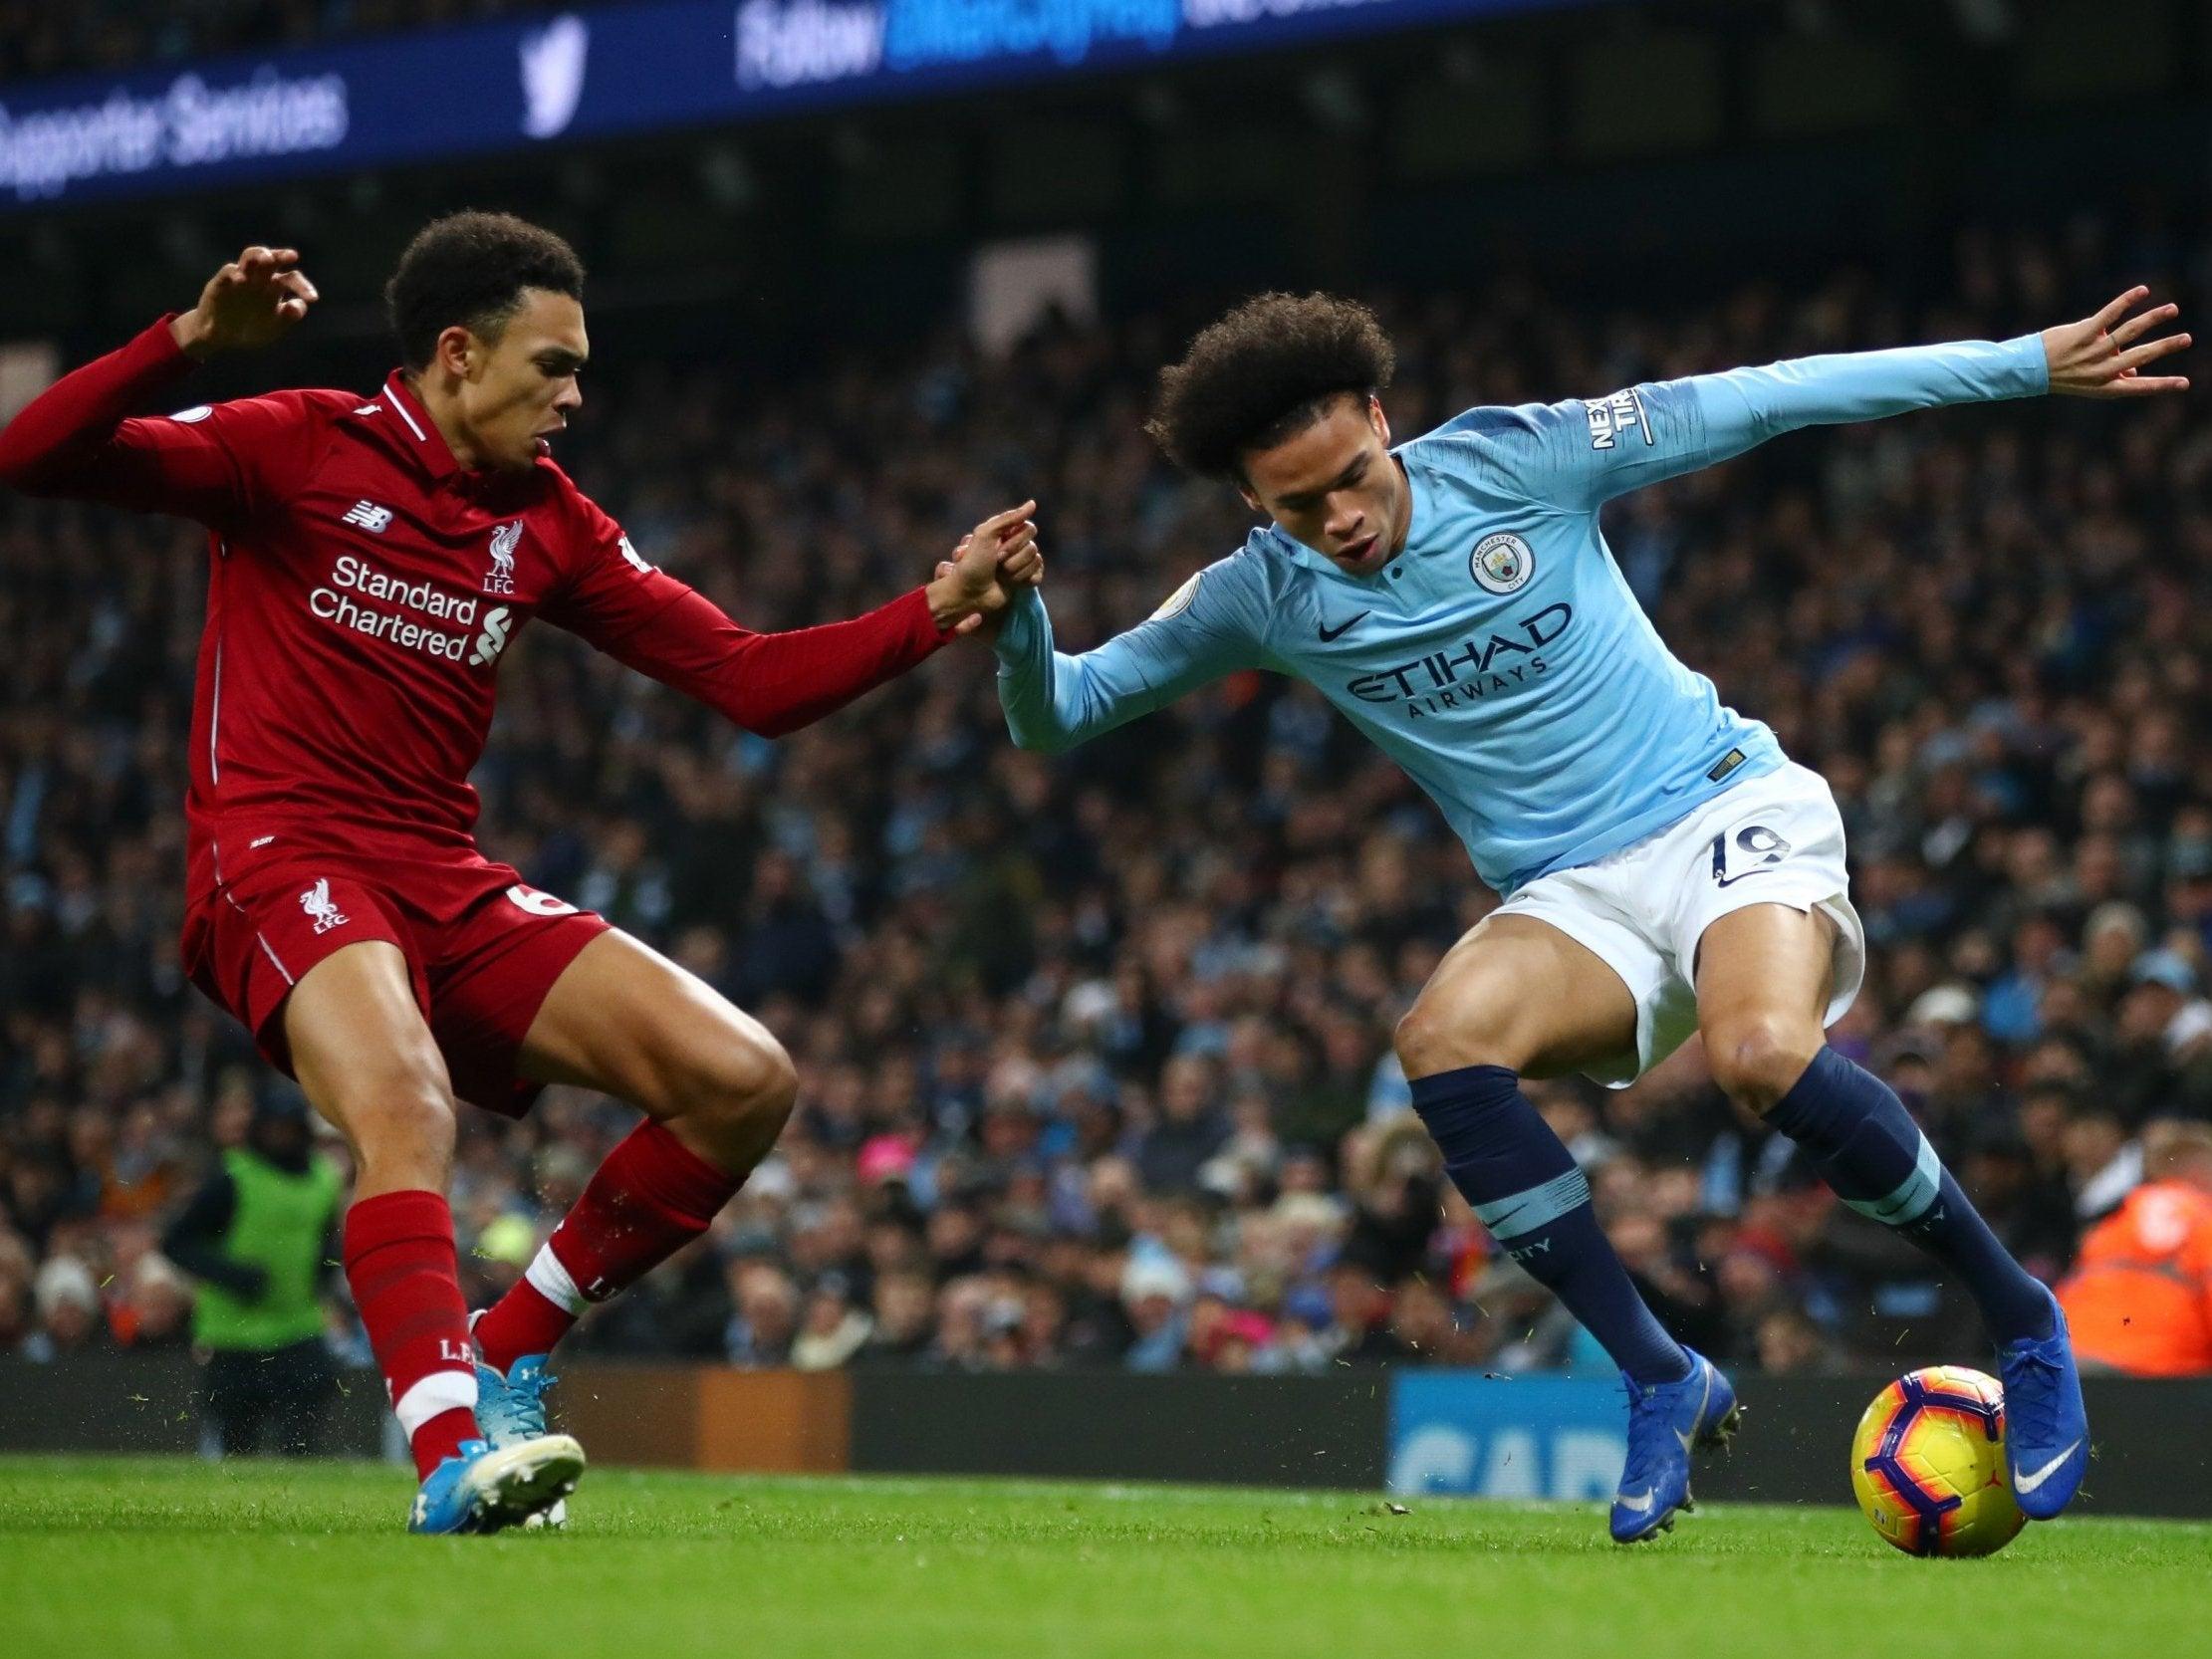 Man city vs liverpool live stream and tv info latest score and updates prediction and odds - Manchester city vs liverpool live stream ...